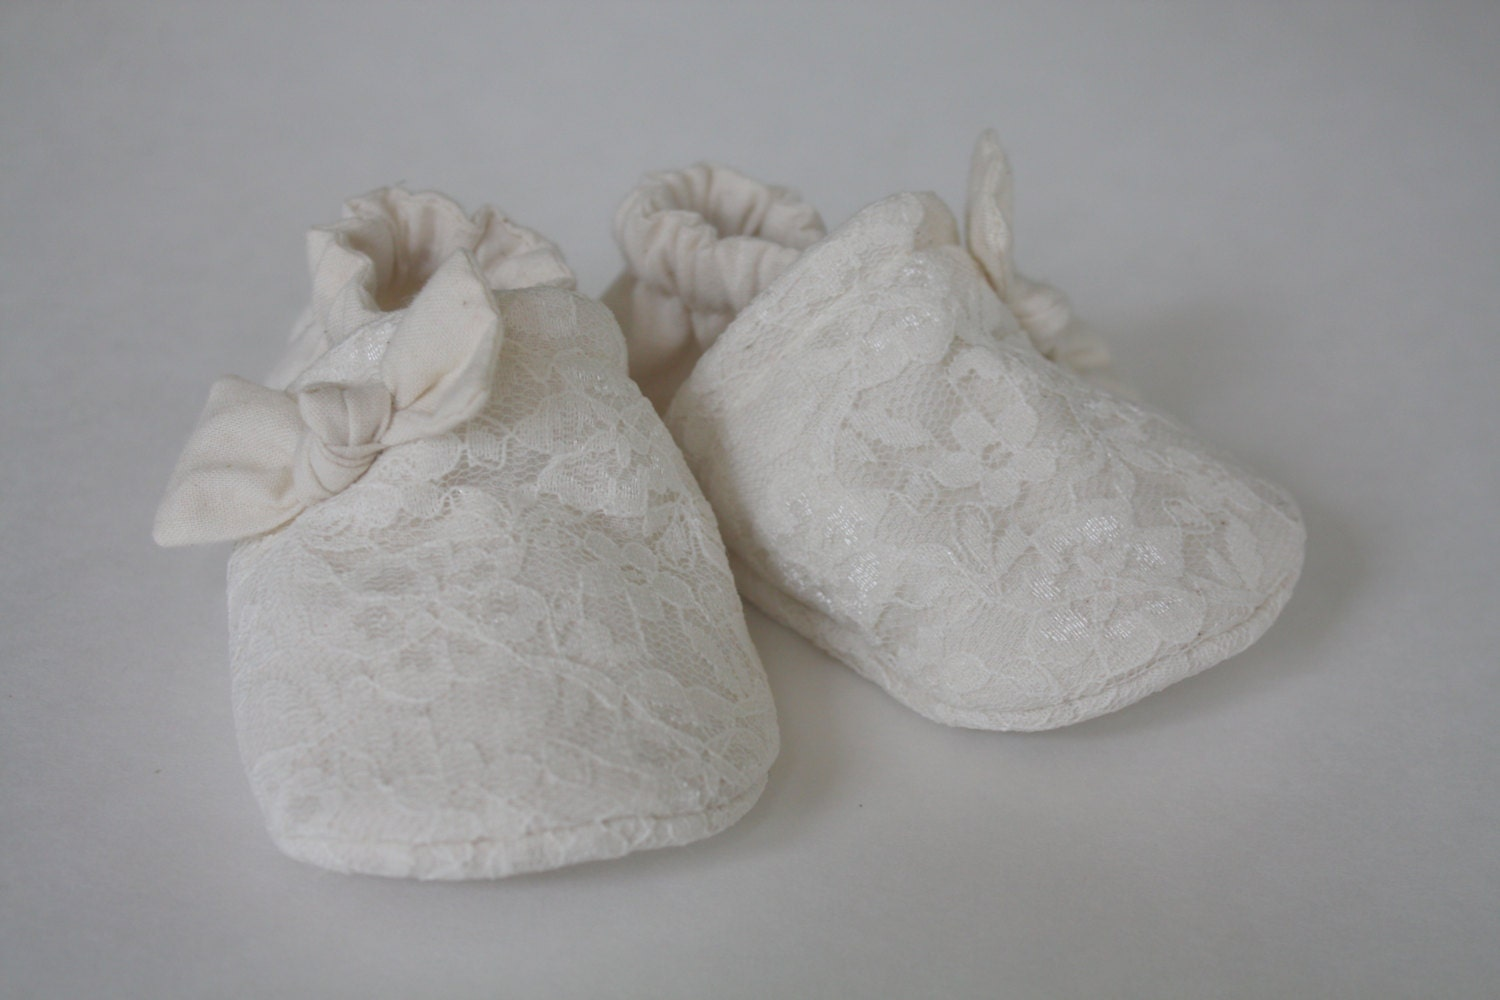 creme white lace baby shoes, slippers, crib shoes, indoor shoes 0-2Tmonths - mychickiet